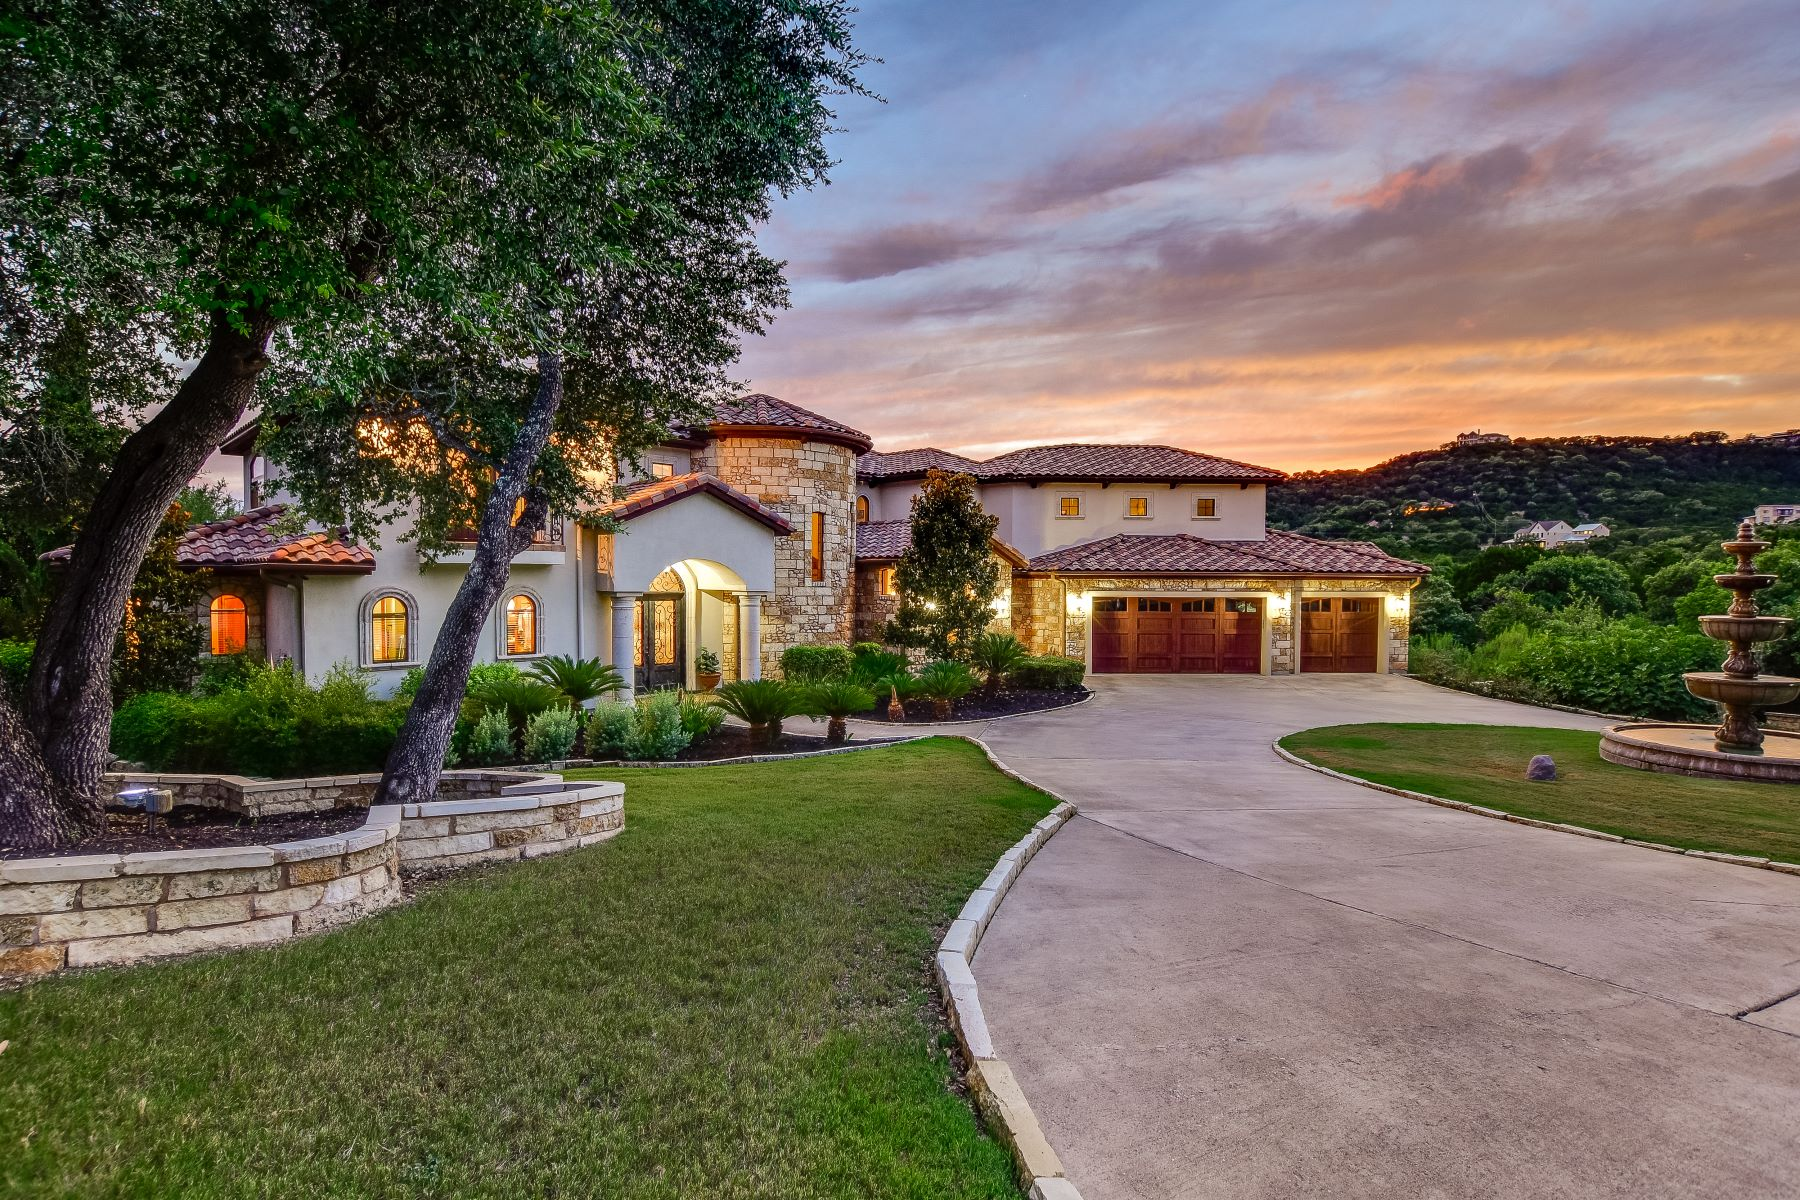 Single Family Homes for Sale at Tuscan-Style Lake Travis Escape With Vineyard 16920 Northlake Hills Drive Jonestown, Texas 78645 United States